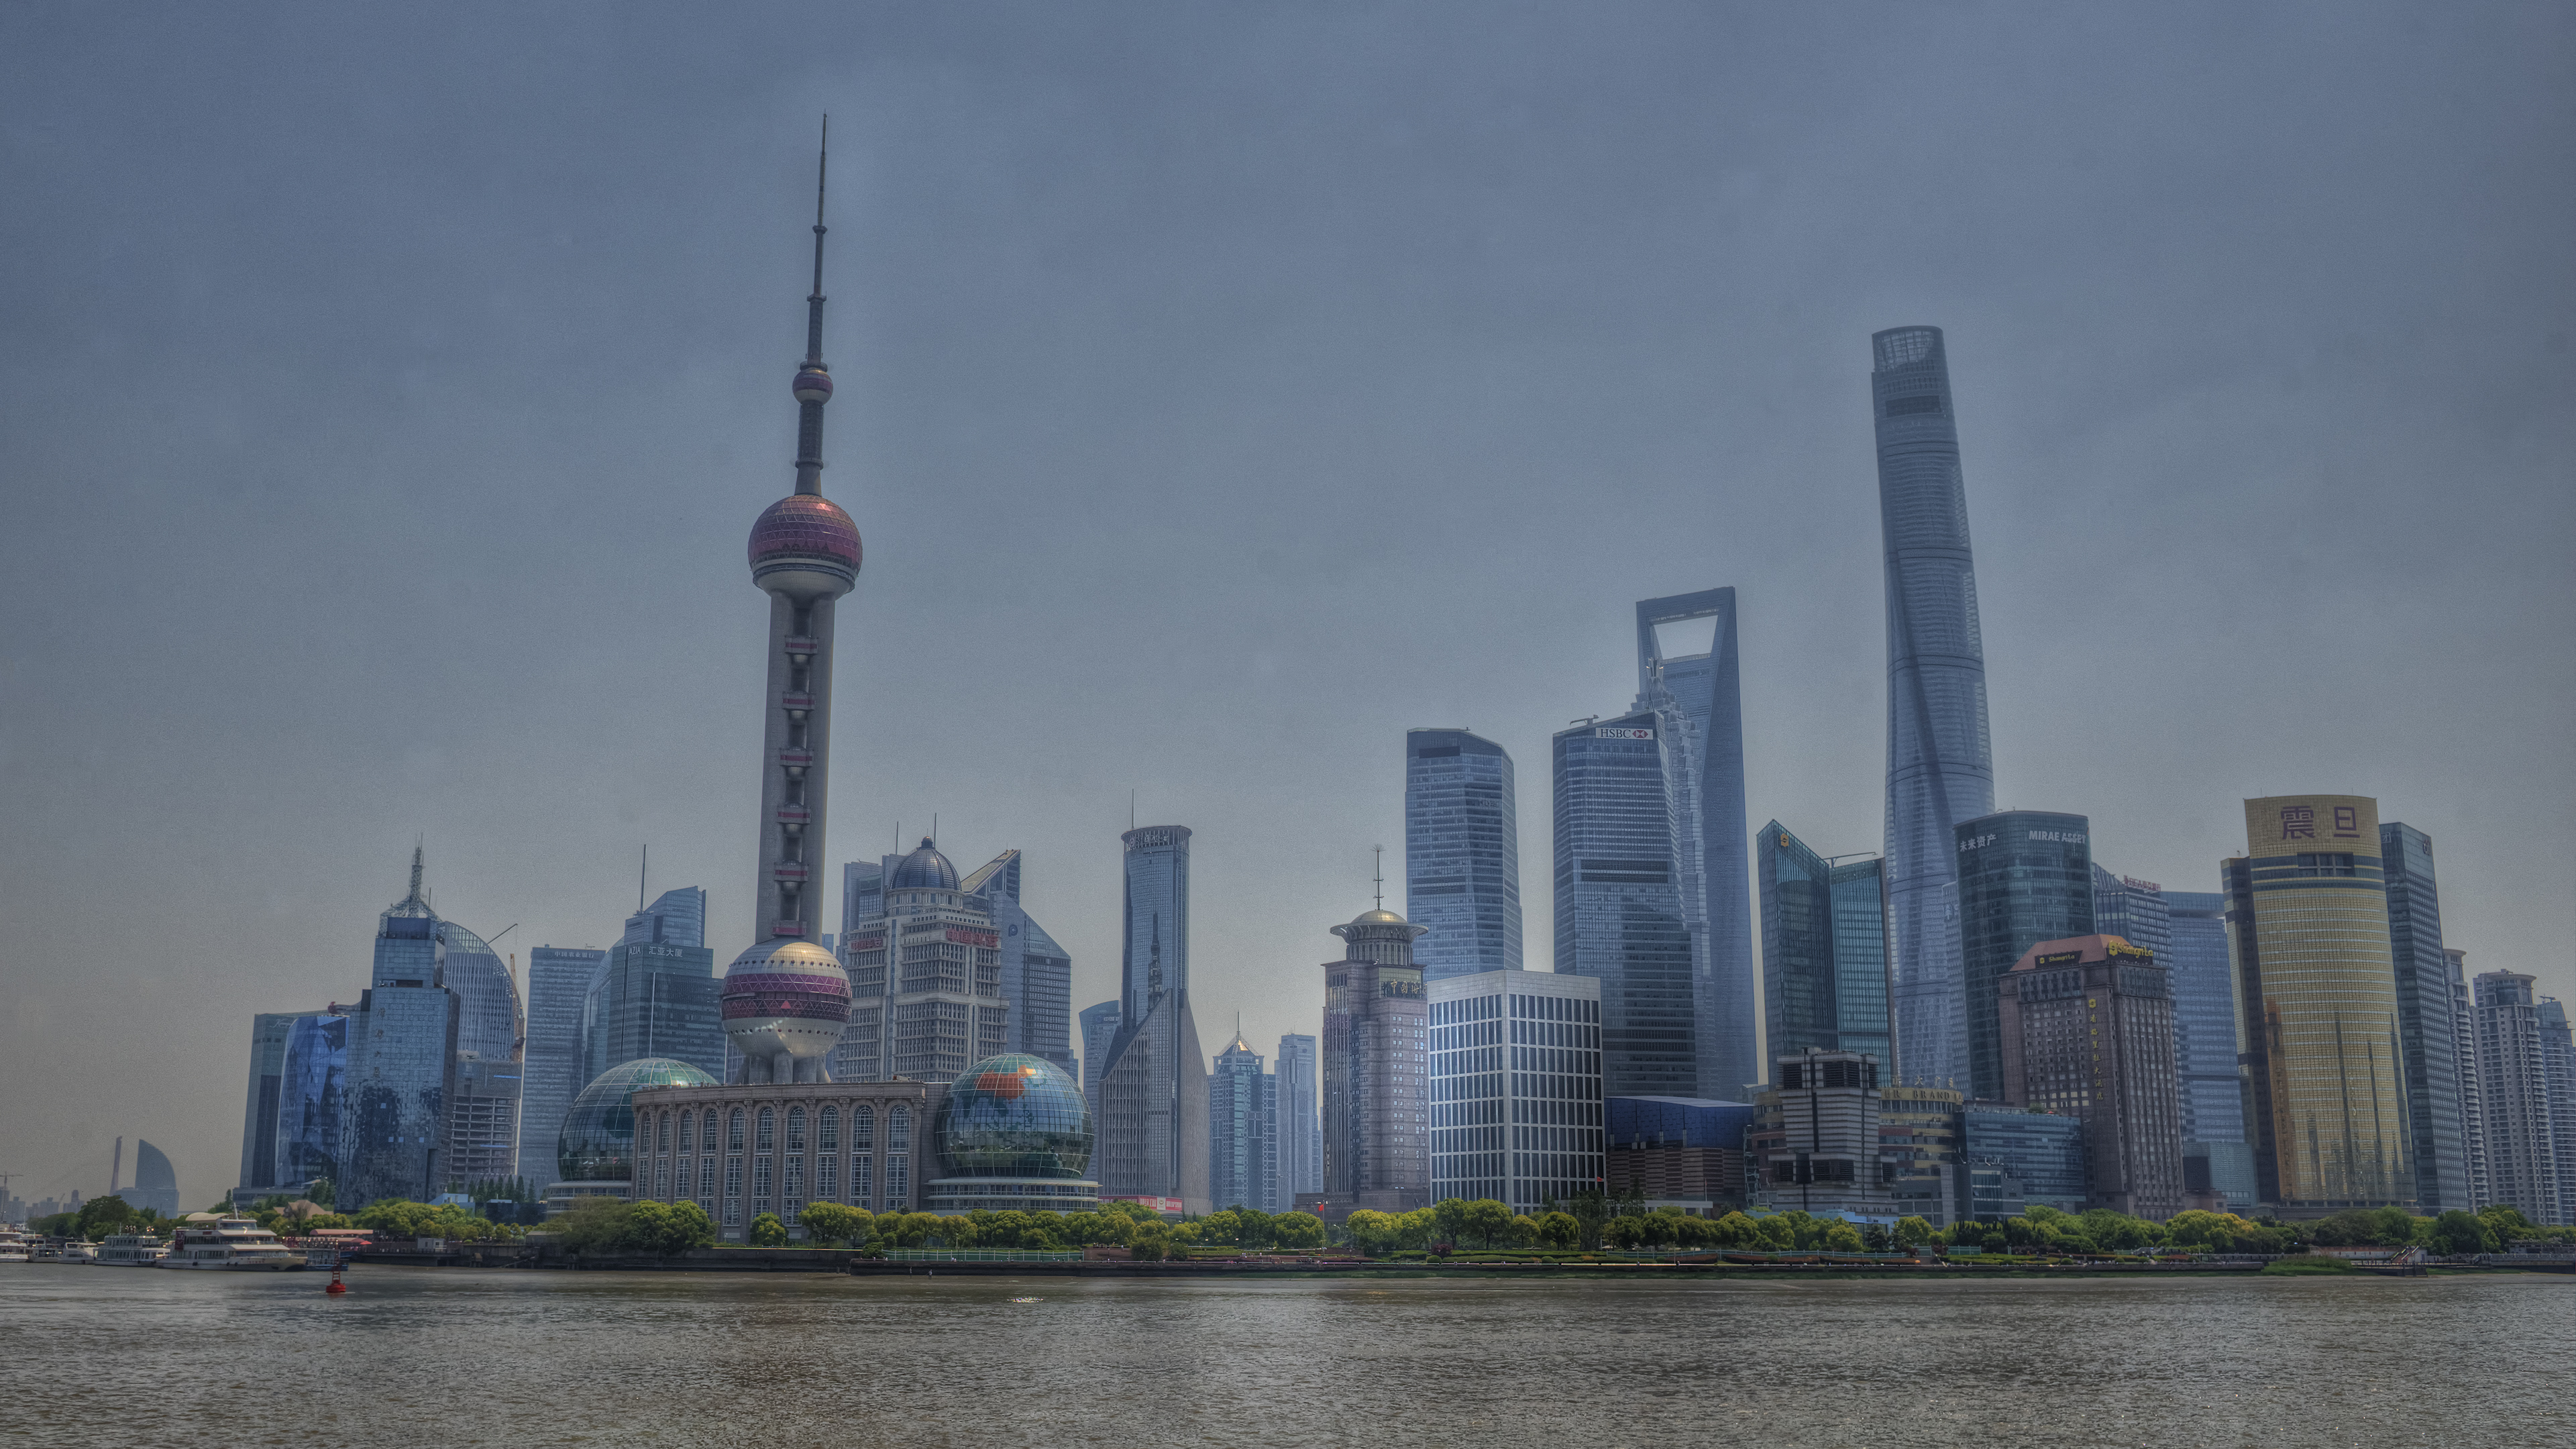 View from the Bund of Shanghai